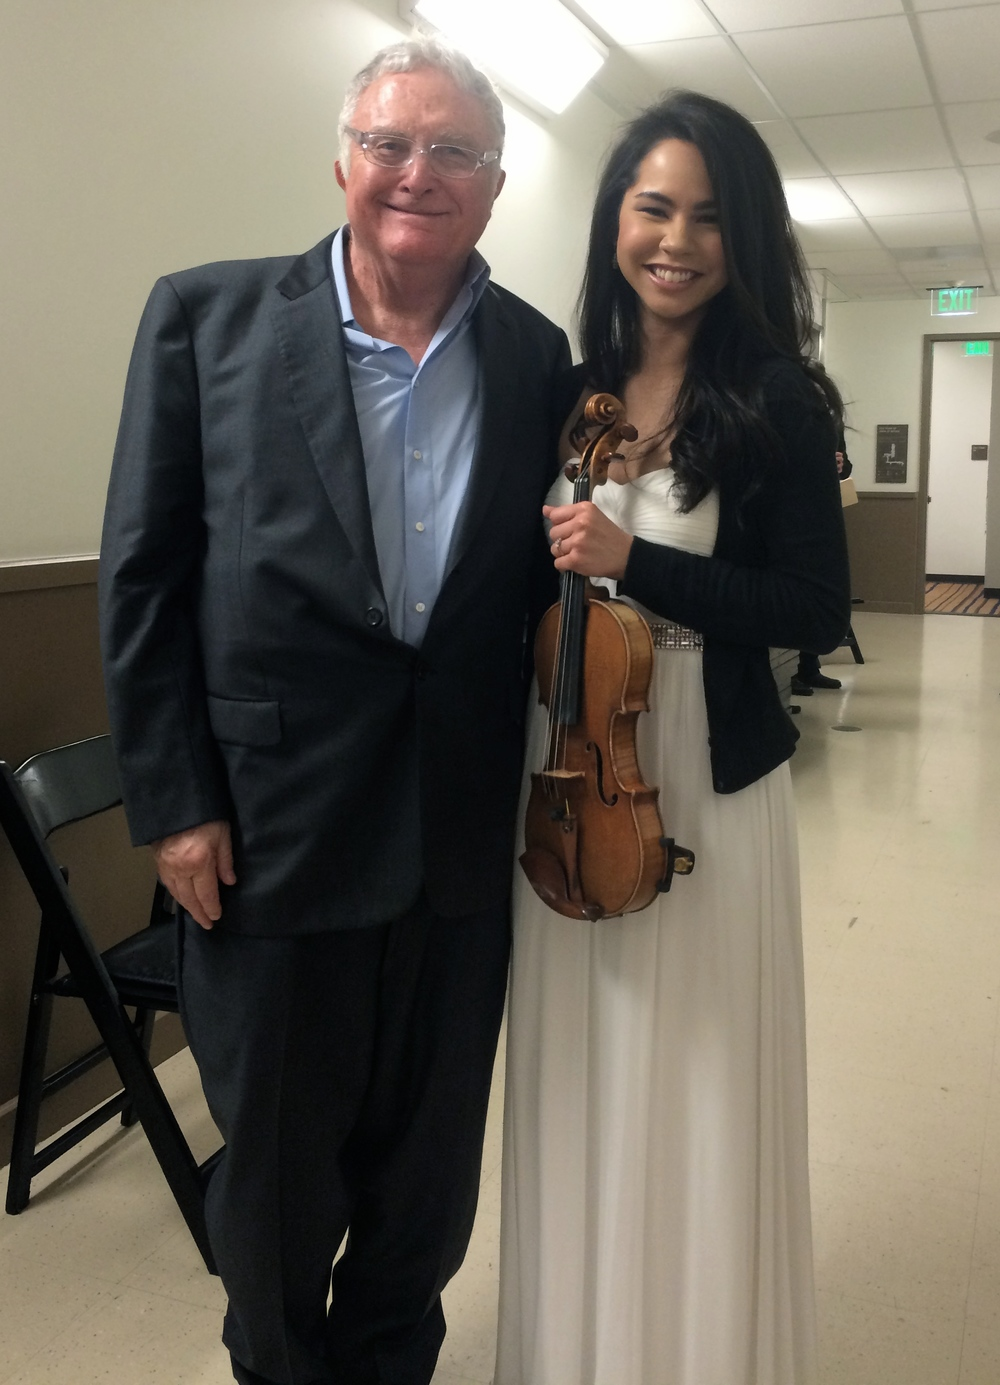 Backstage with film composer Randy Newman  February 2015  ·  Los Angeles